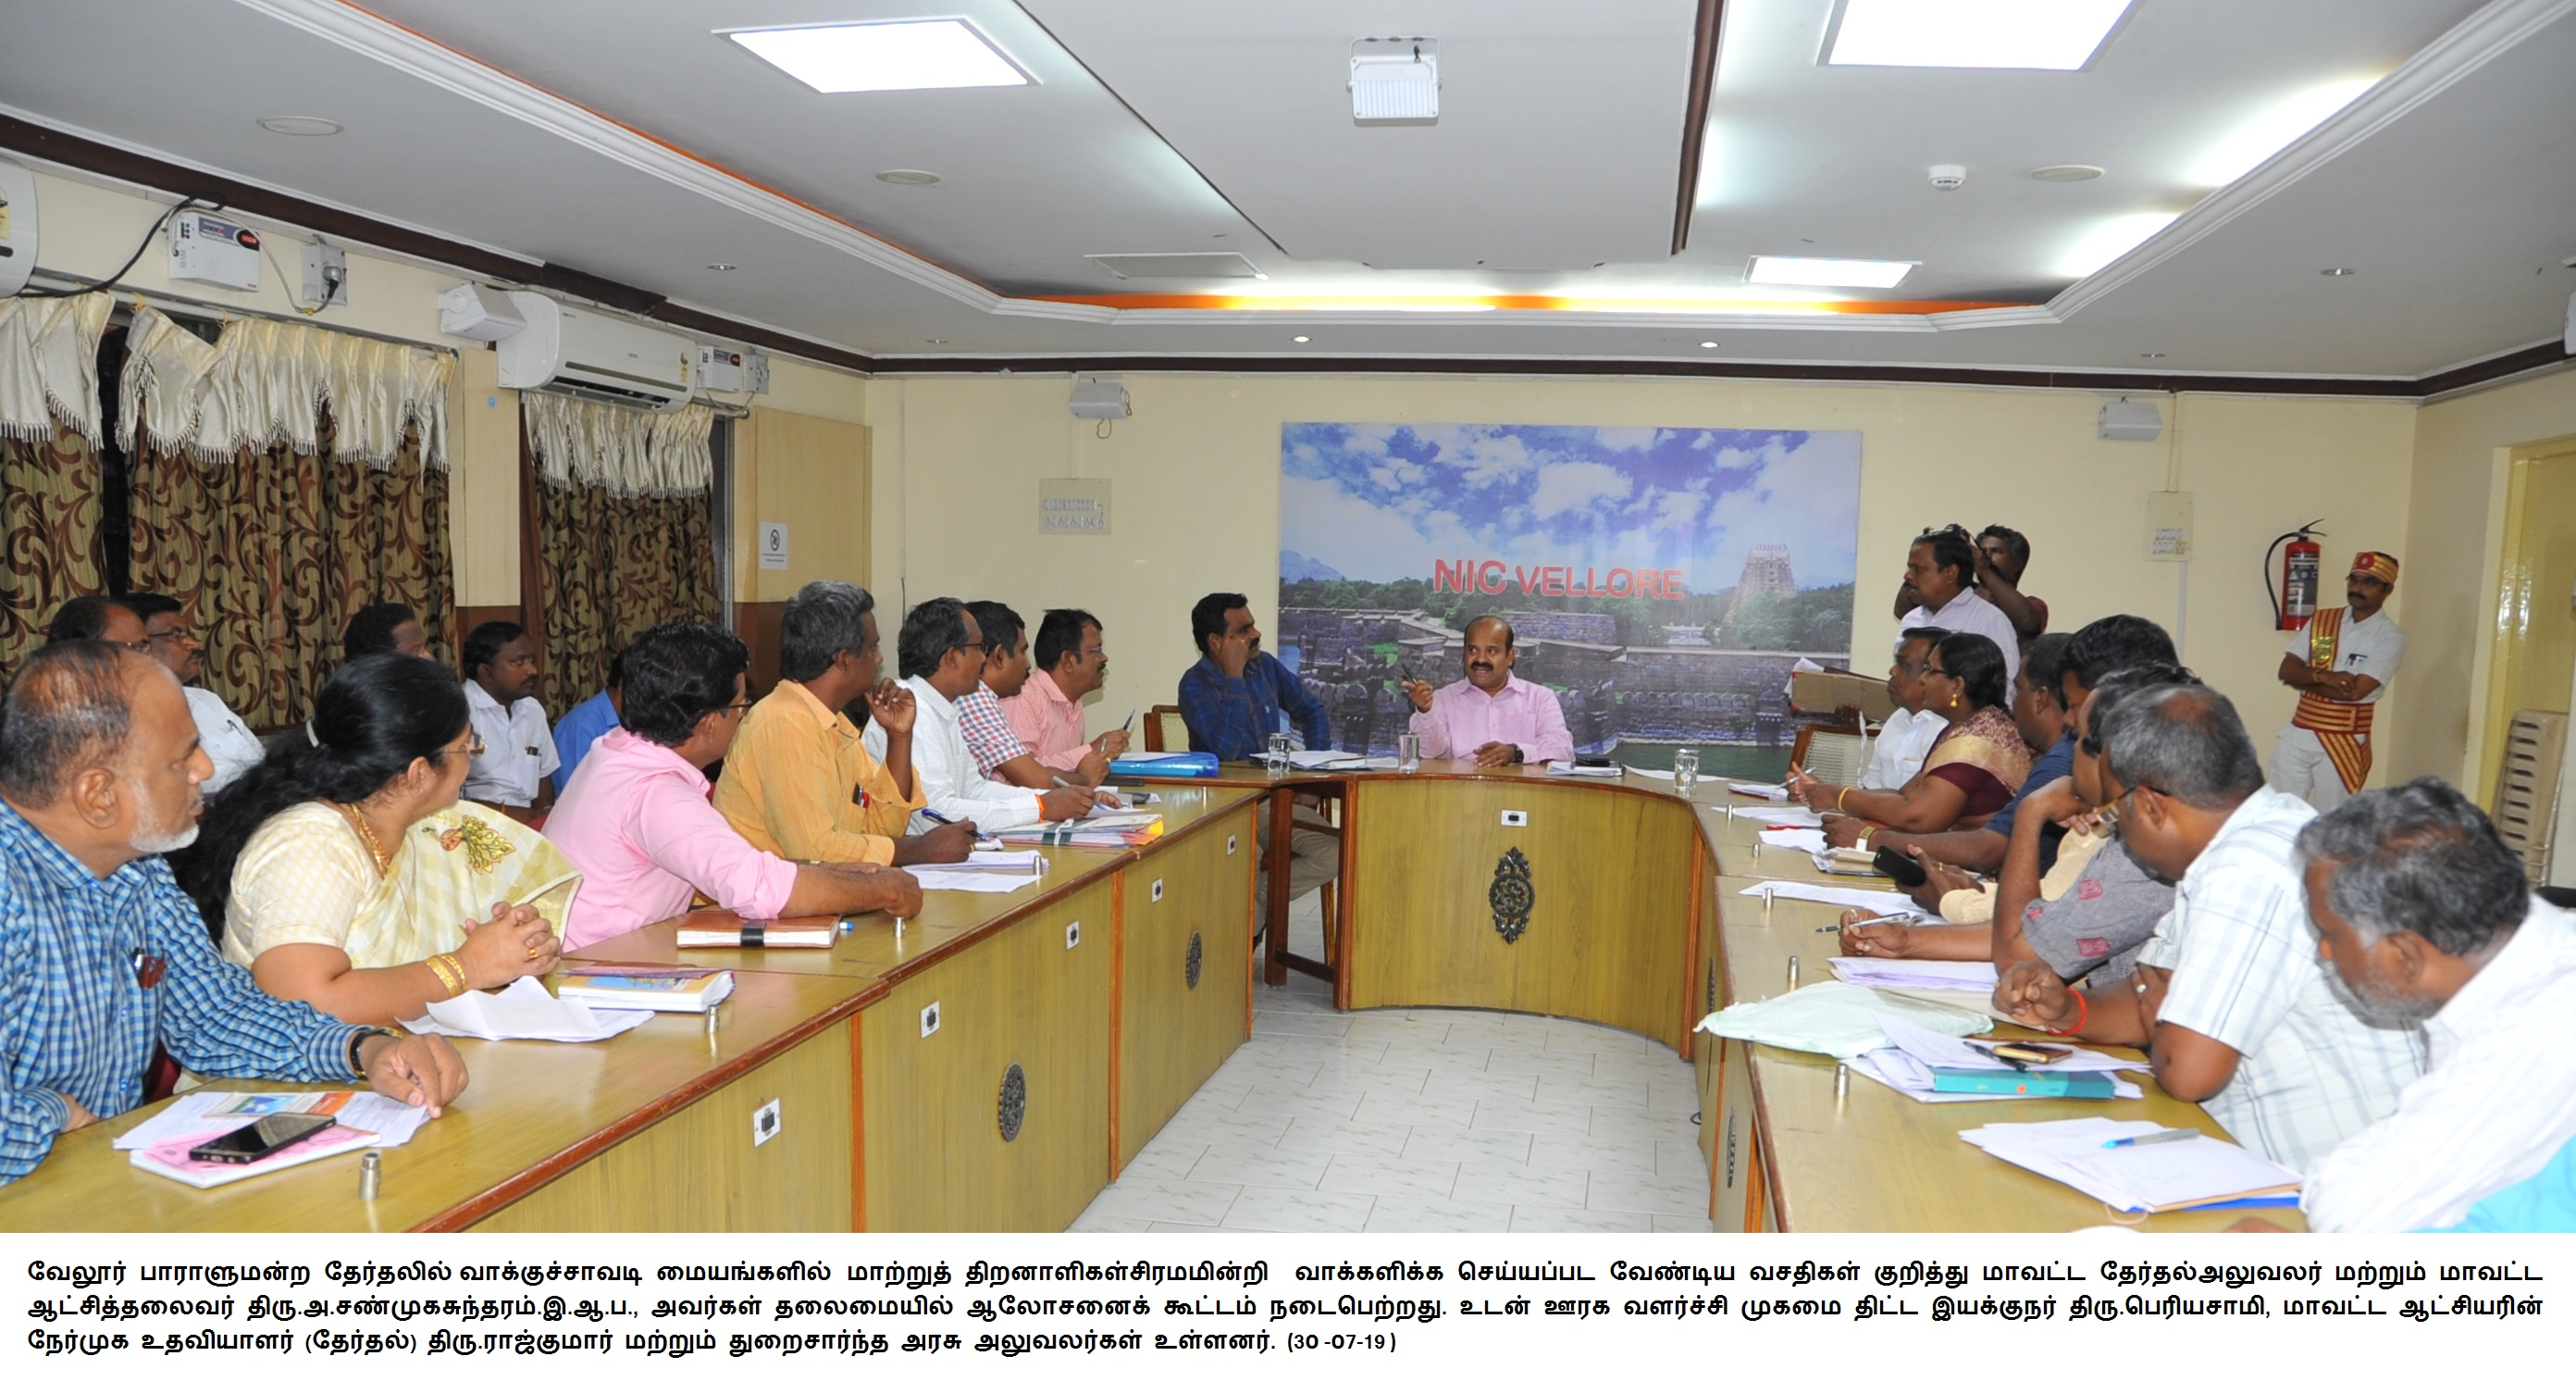 Meeting on the Facilities for Disabled Peoples to Vote in Vellore Parliamentary Elections 30/07/2019